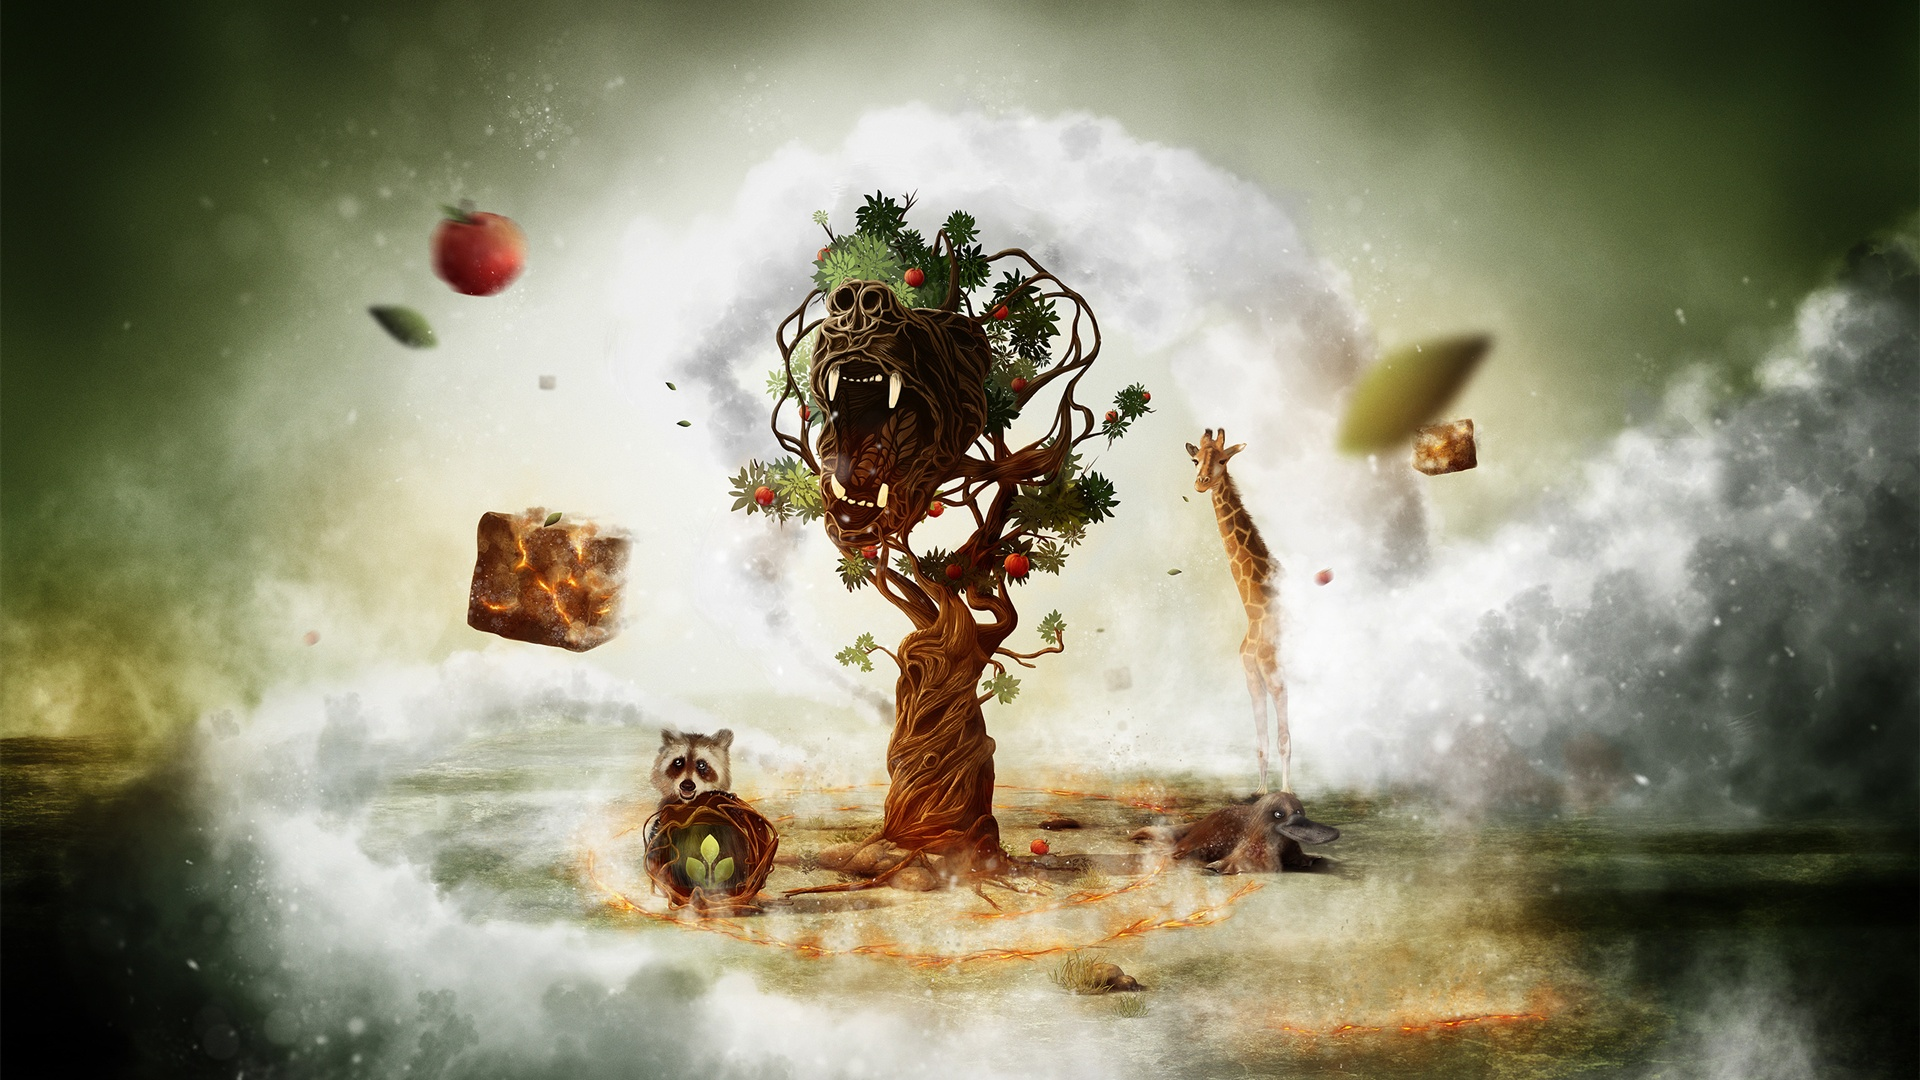 Fantasy art creative animals and tree wallpaper - 1920x1080